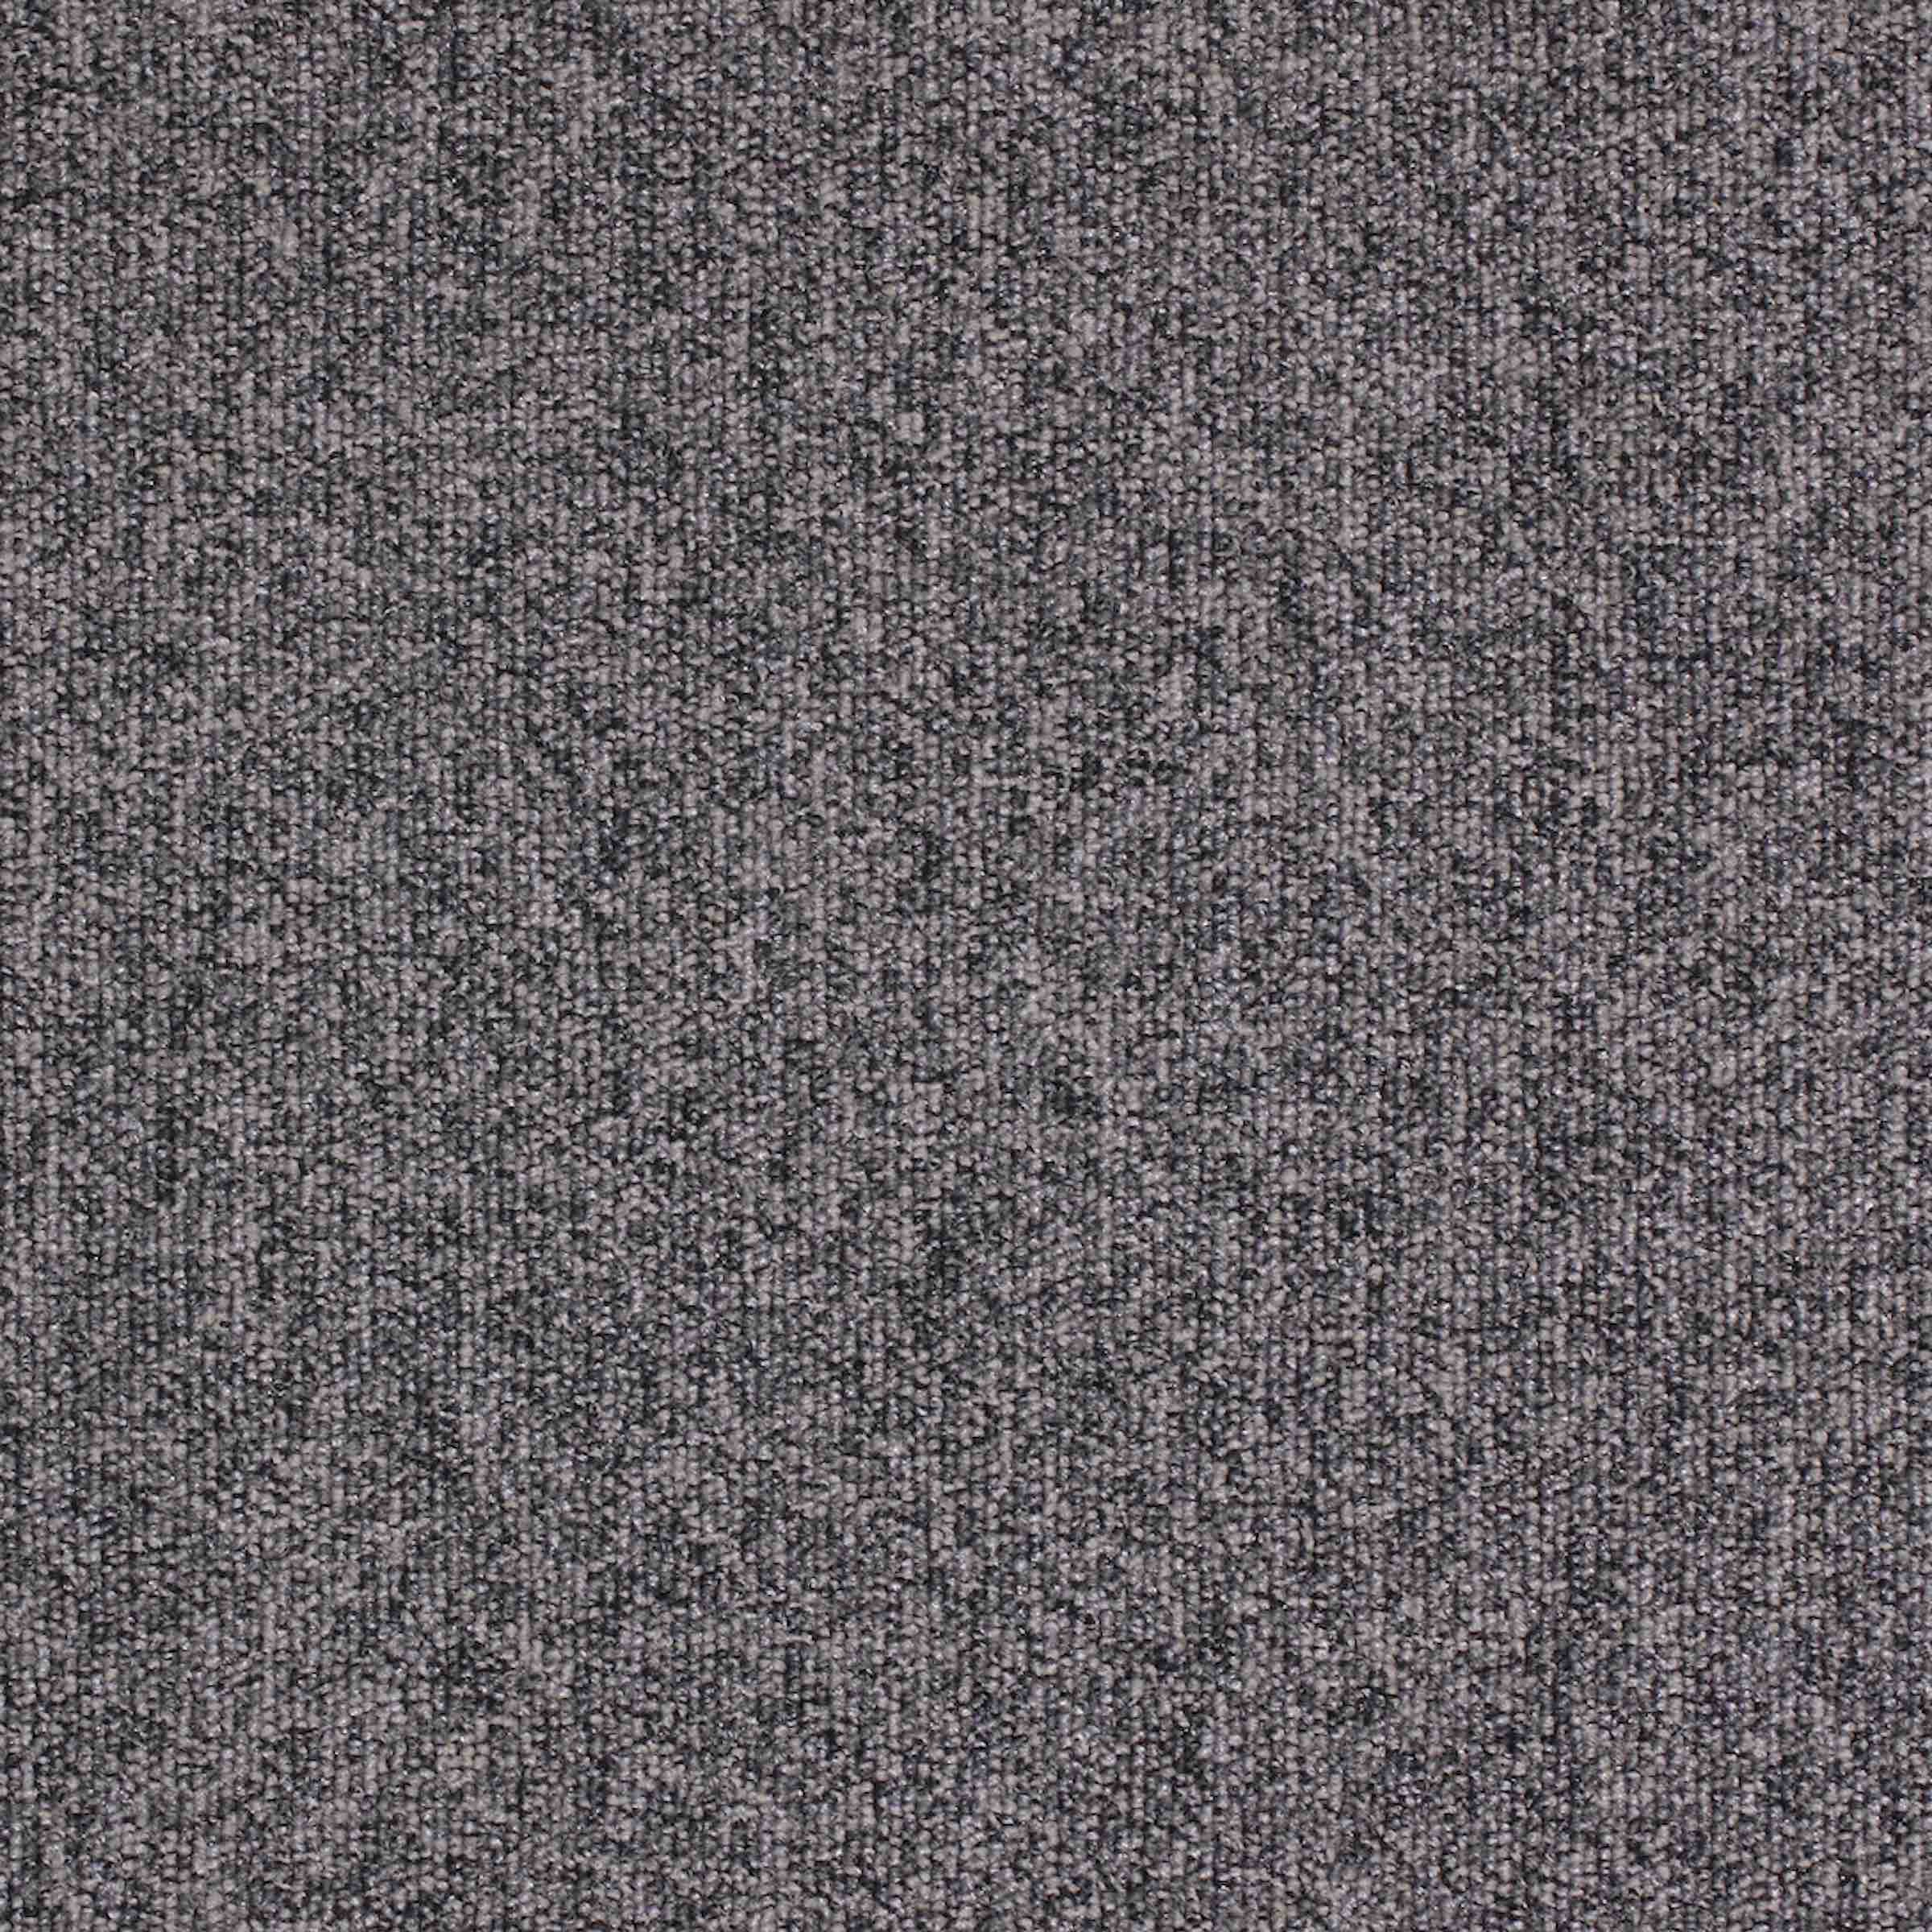 Workspace Loop | Silver | Paragon Carpet Tiles | Commercial Carpet Tiles